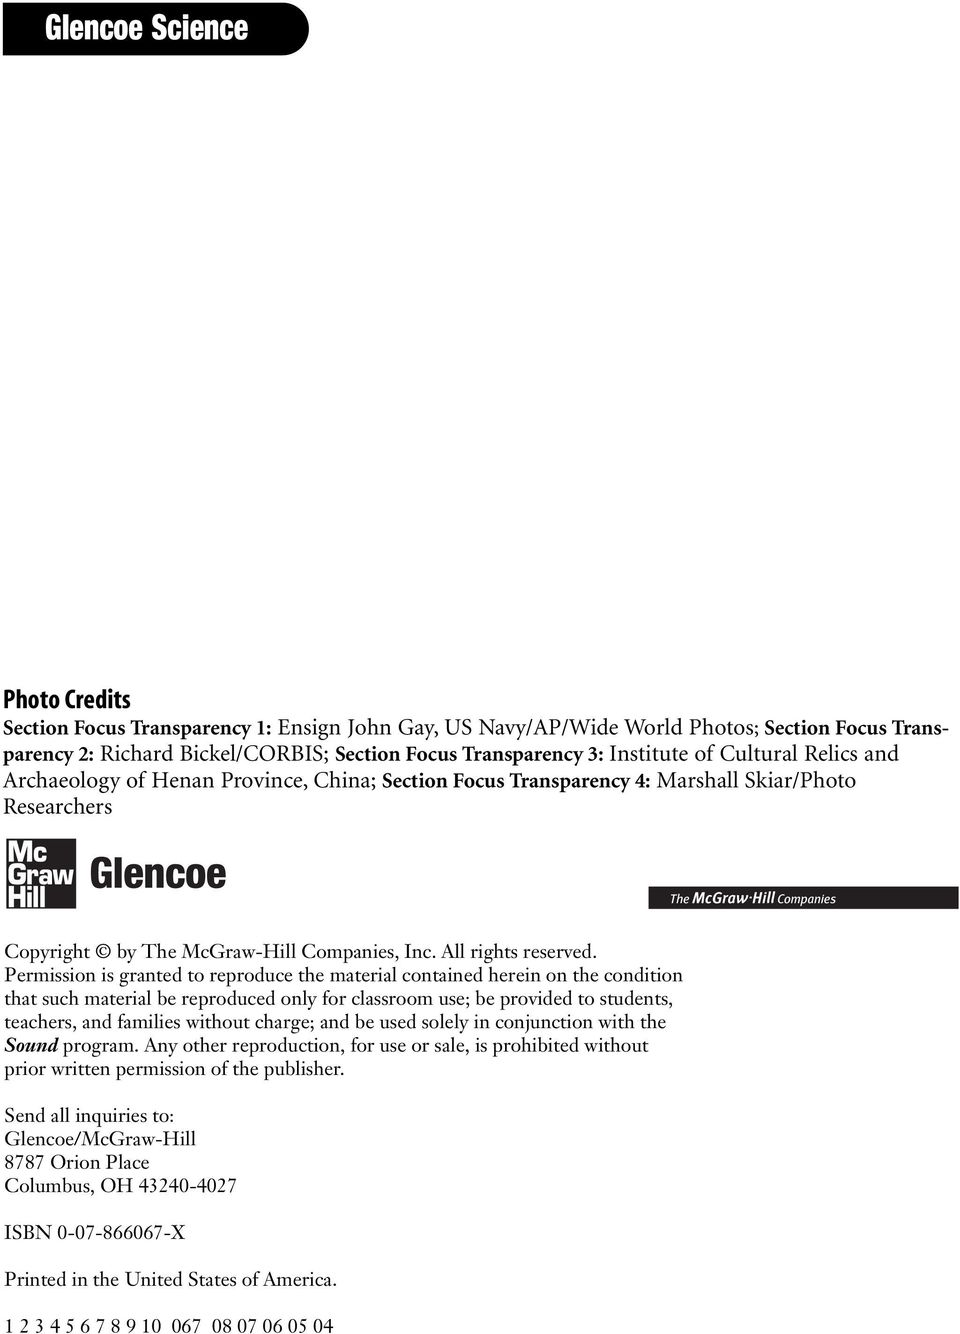 worksheet Mcgraw Hill Worksheets Science sound lab worksheets for each student edition activity laboratory permission is granted to reproduce the material contained herein on condition that such be